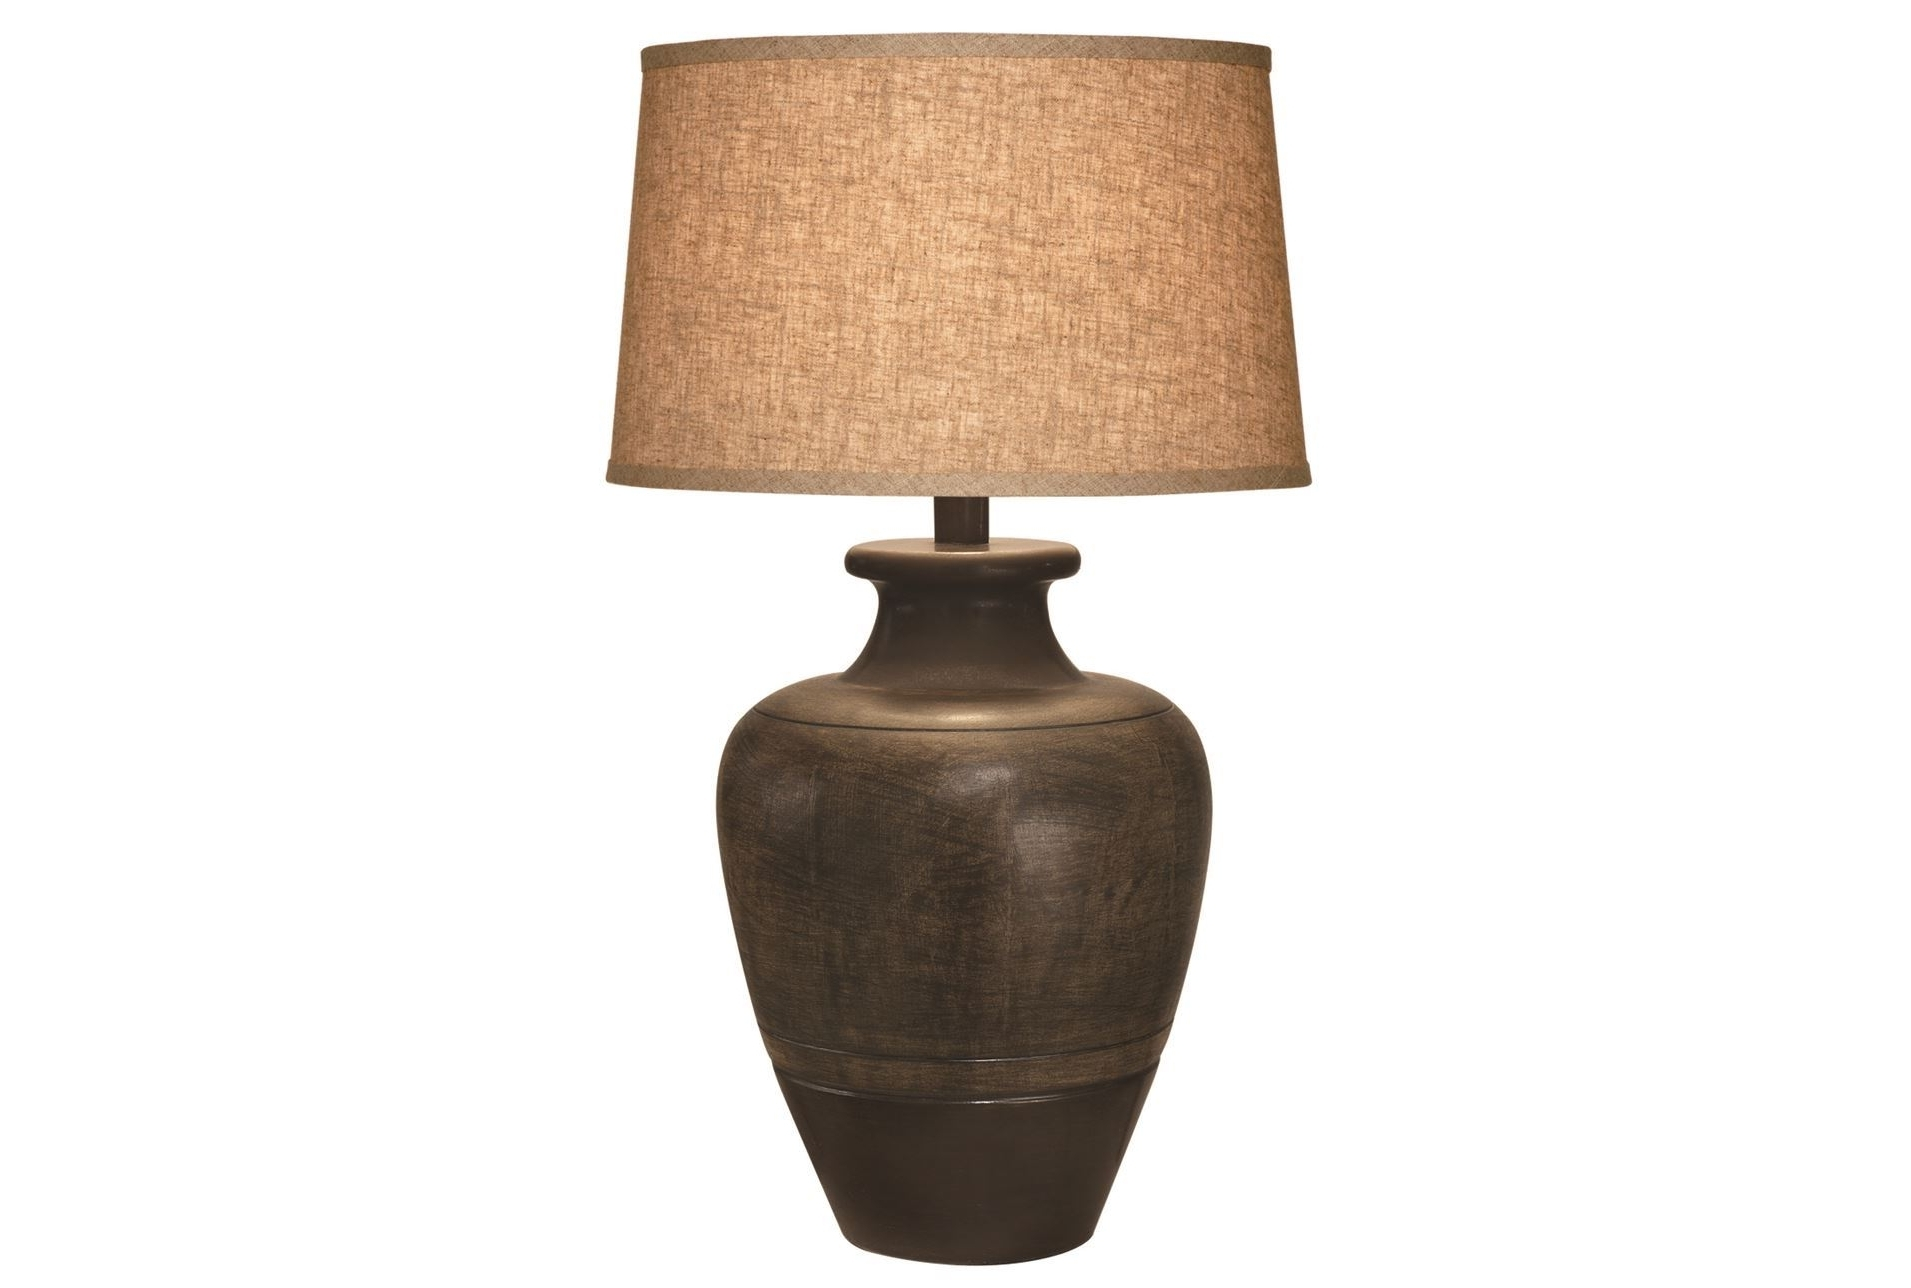 Most Current Bronze Table Lamps For Living Room – Living Room Decorating Design Throughout Bronze Living Room Table Lamps (View 7 of 20)